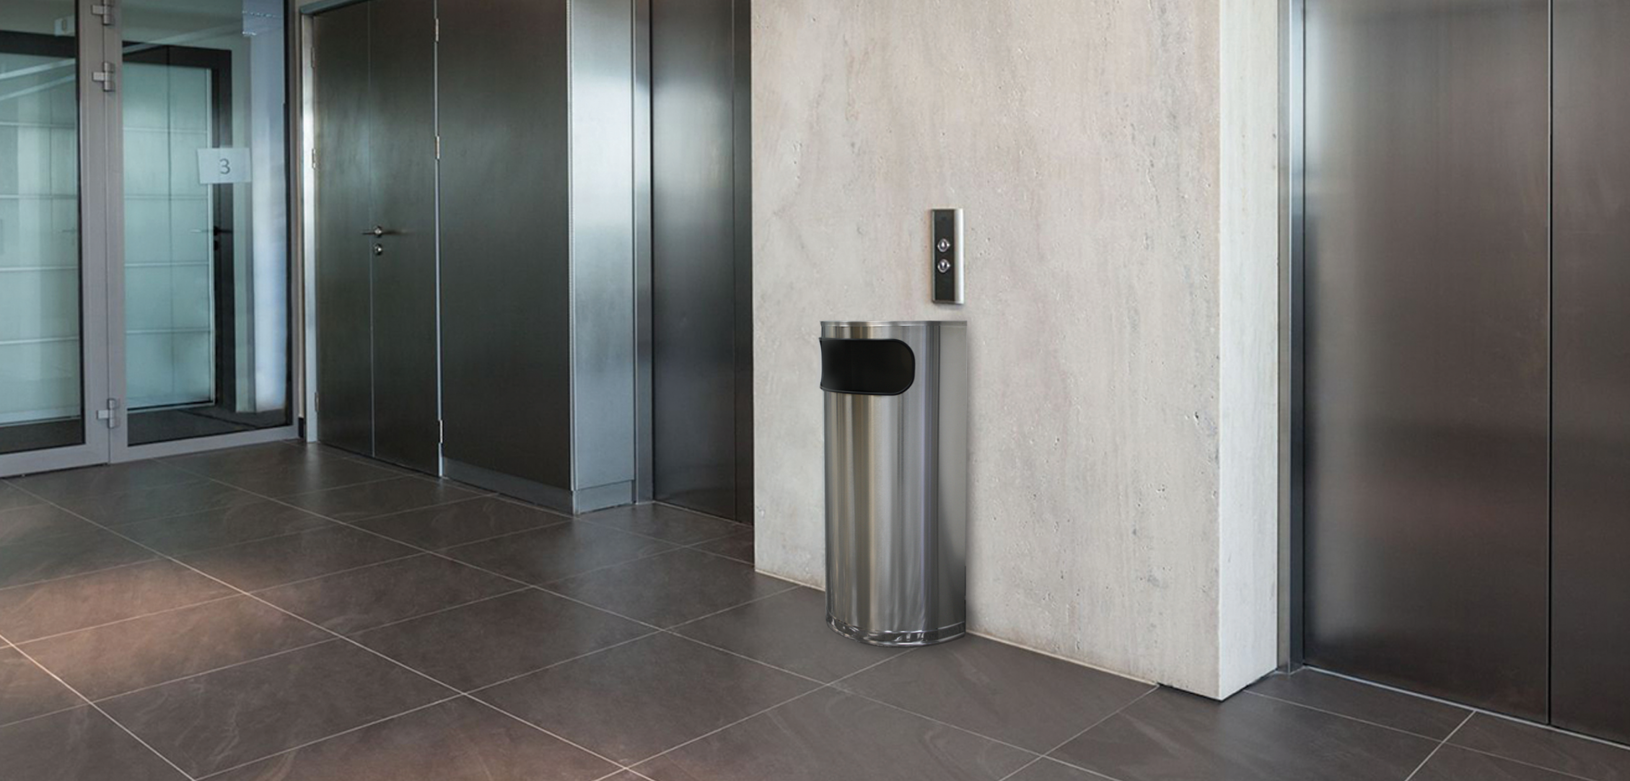 Witt Stainless Steel Half Round Celestial Commercial Garbage Can Indoor Environmental